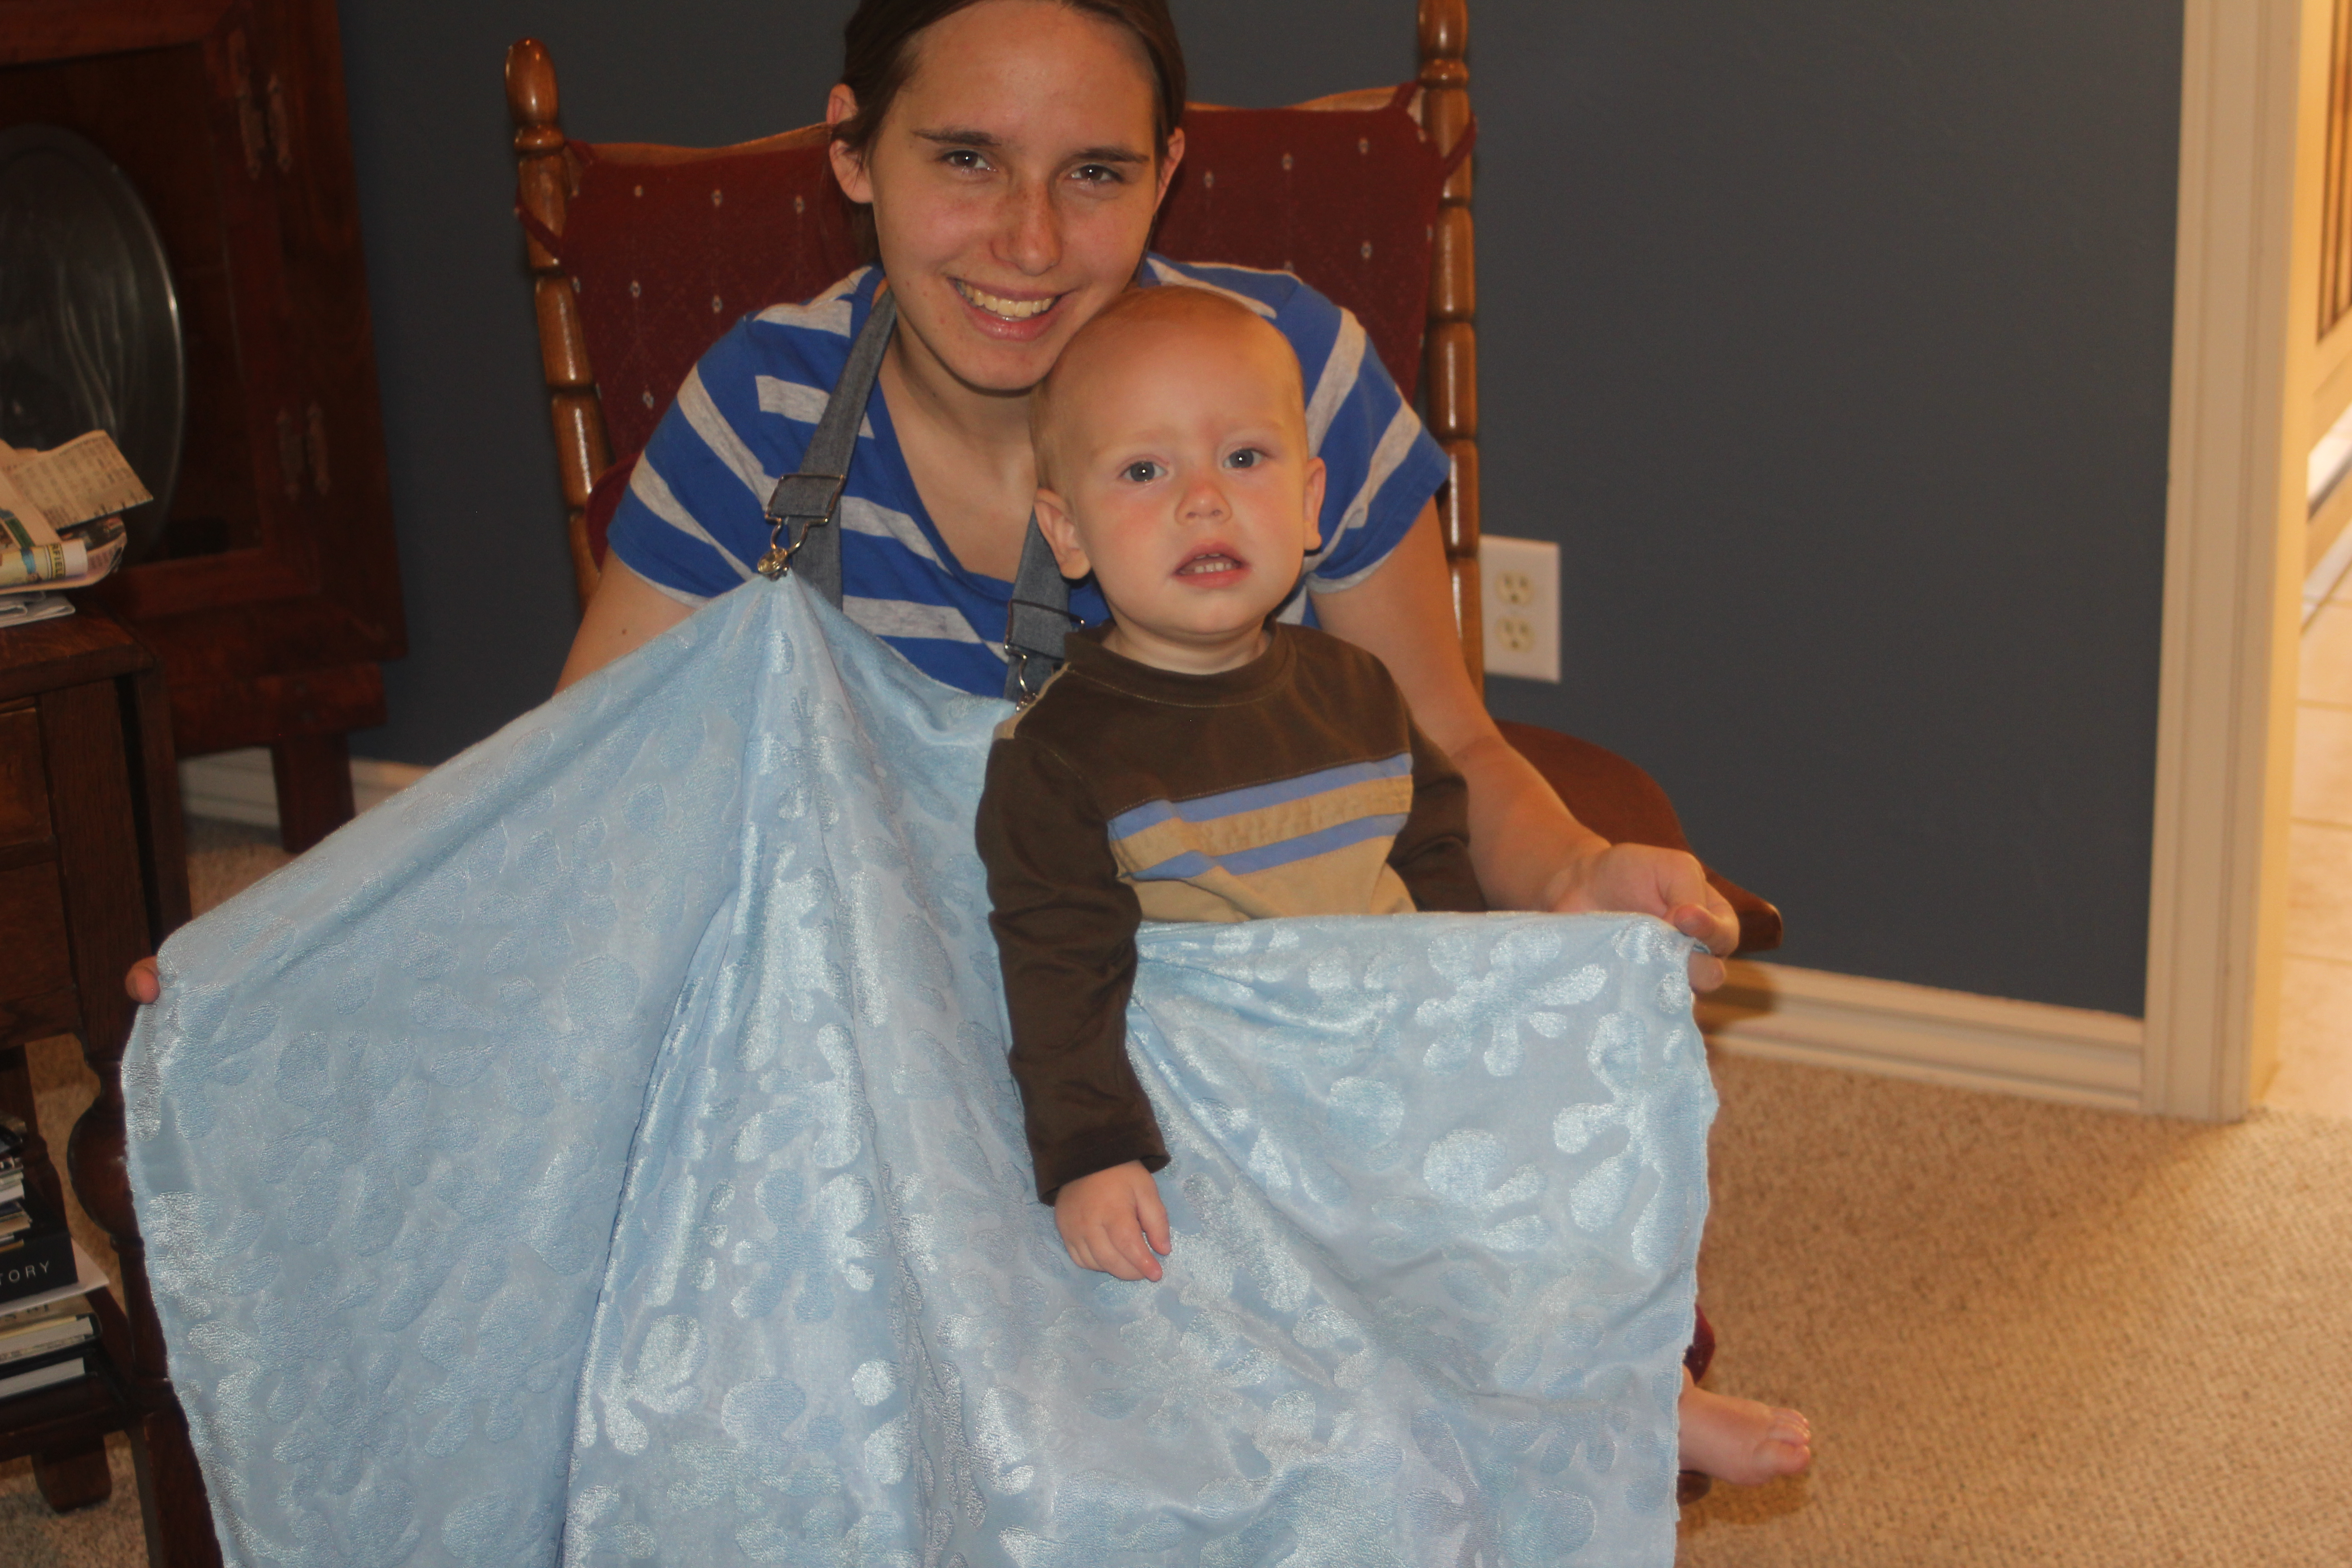 Our Homemade Breastfeeding Cover: Going from Uncovered to Covered